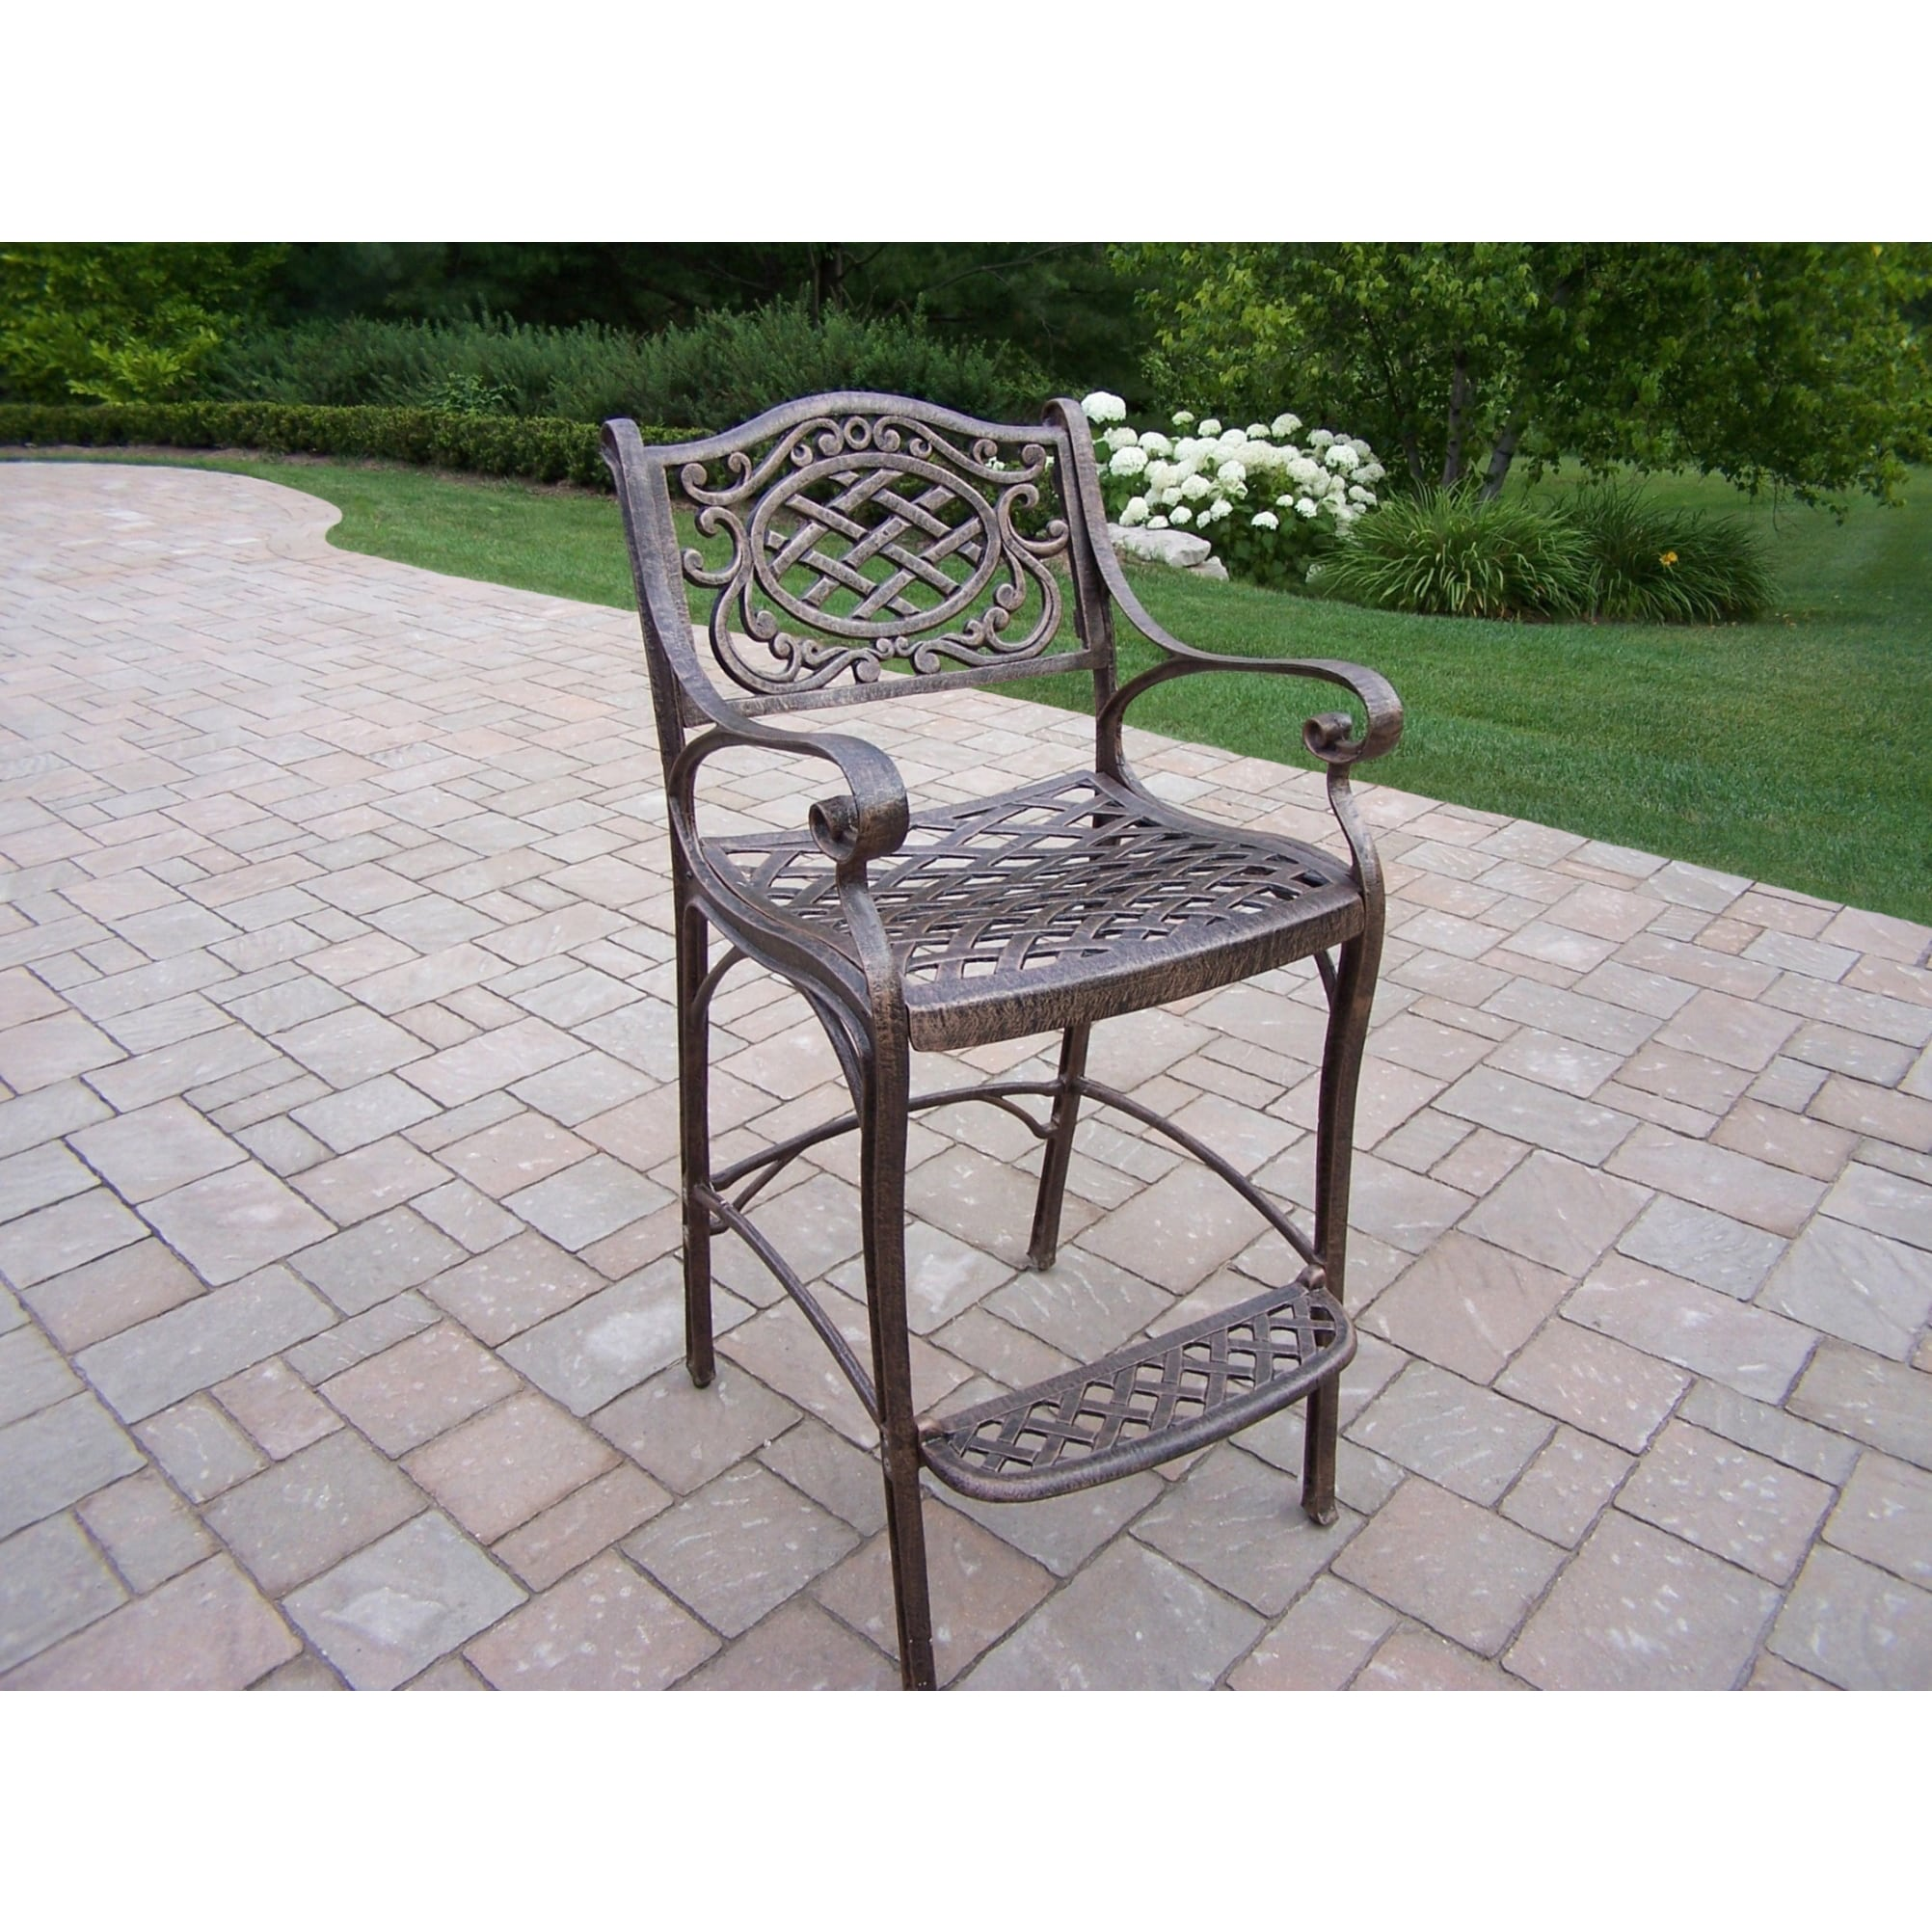 chair stand hsn code cover rentals ma buy outdoor dining sets online at overstock our best